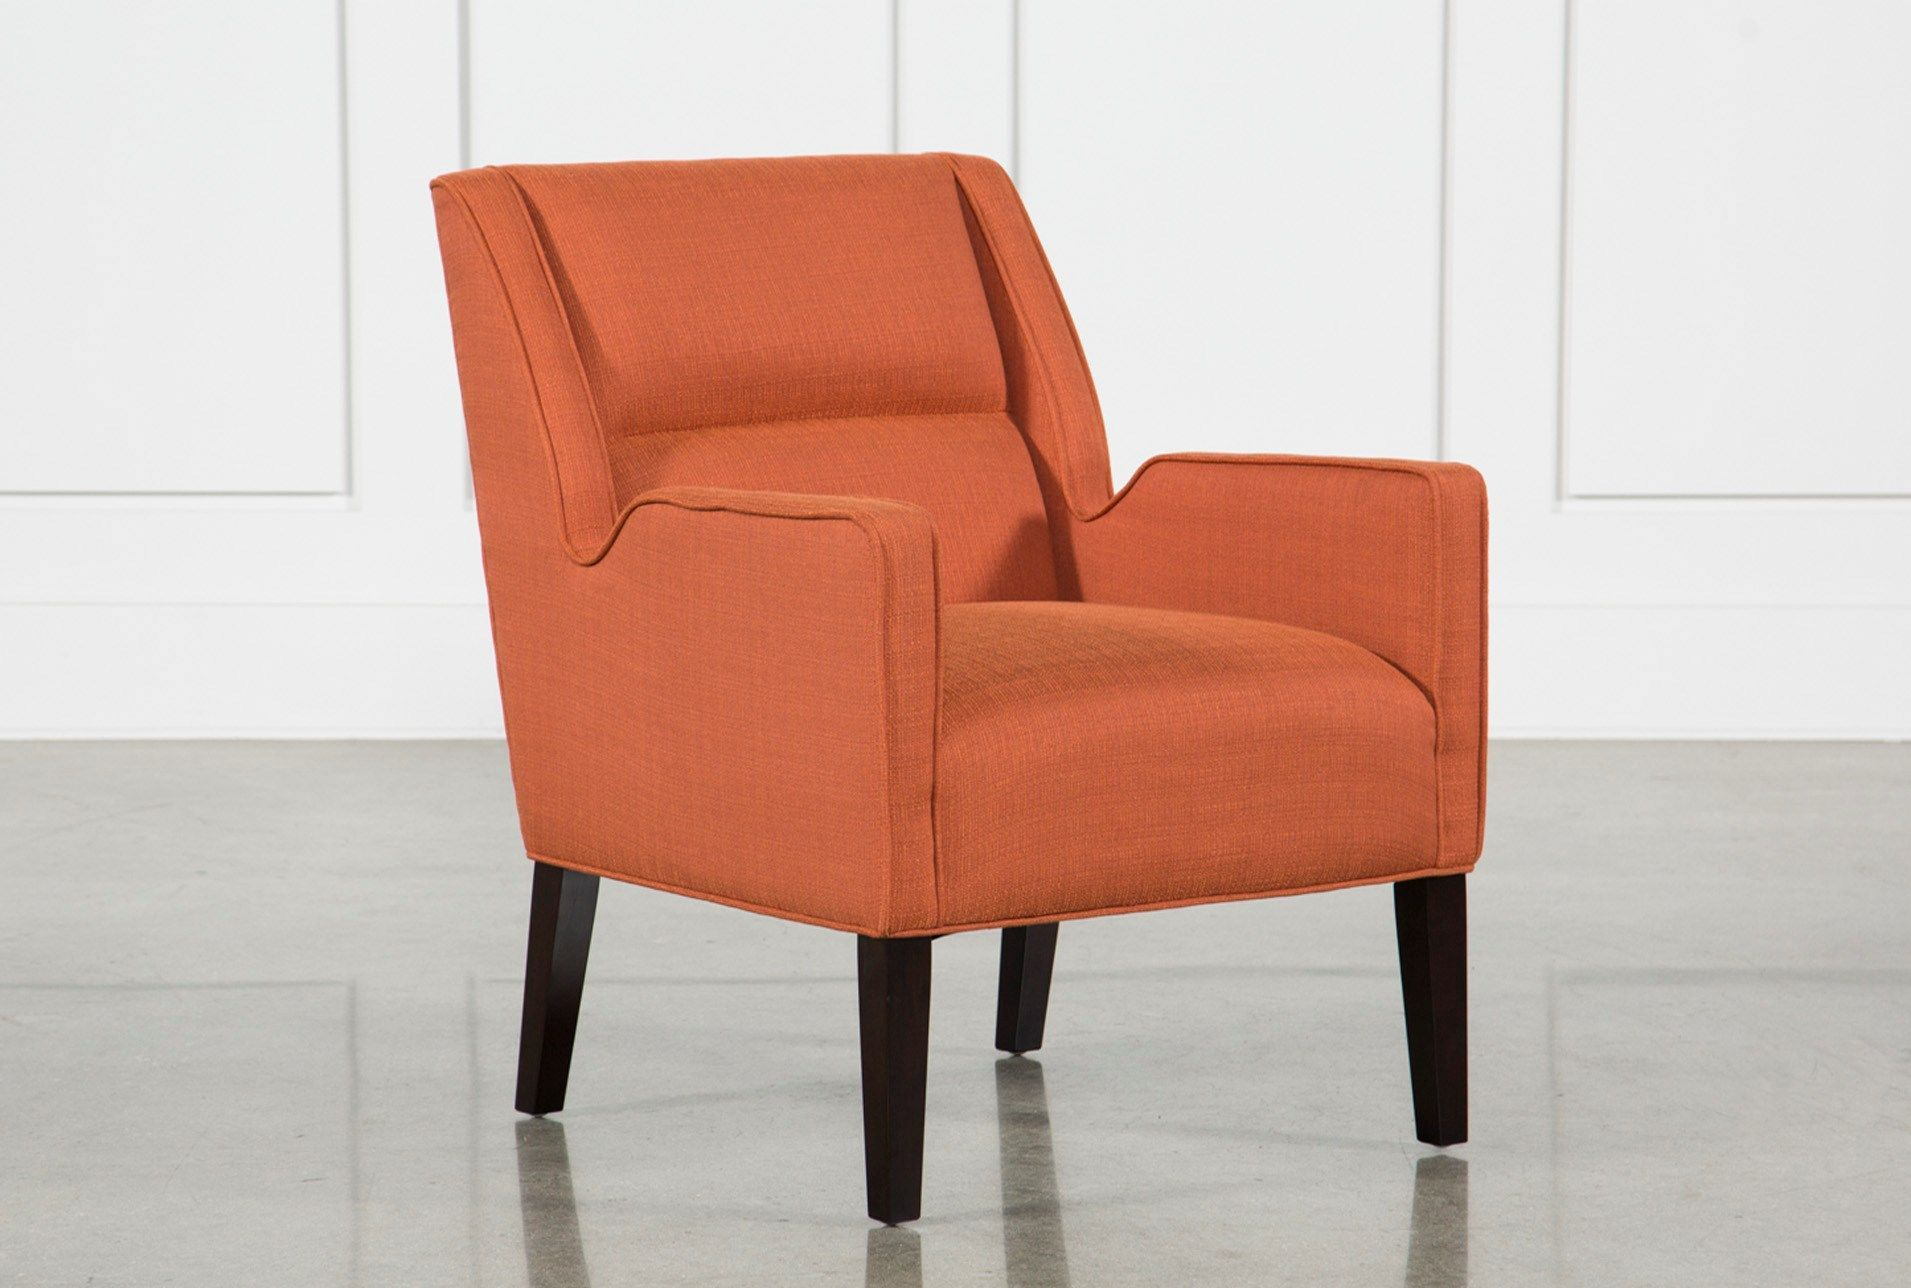 Shop For Reid Orange Accent Chair At Livingspaces Com Enjoy Free